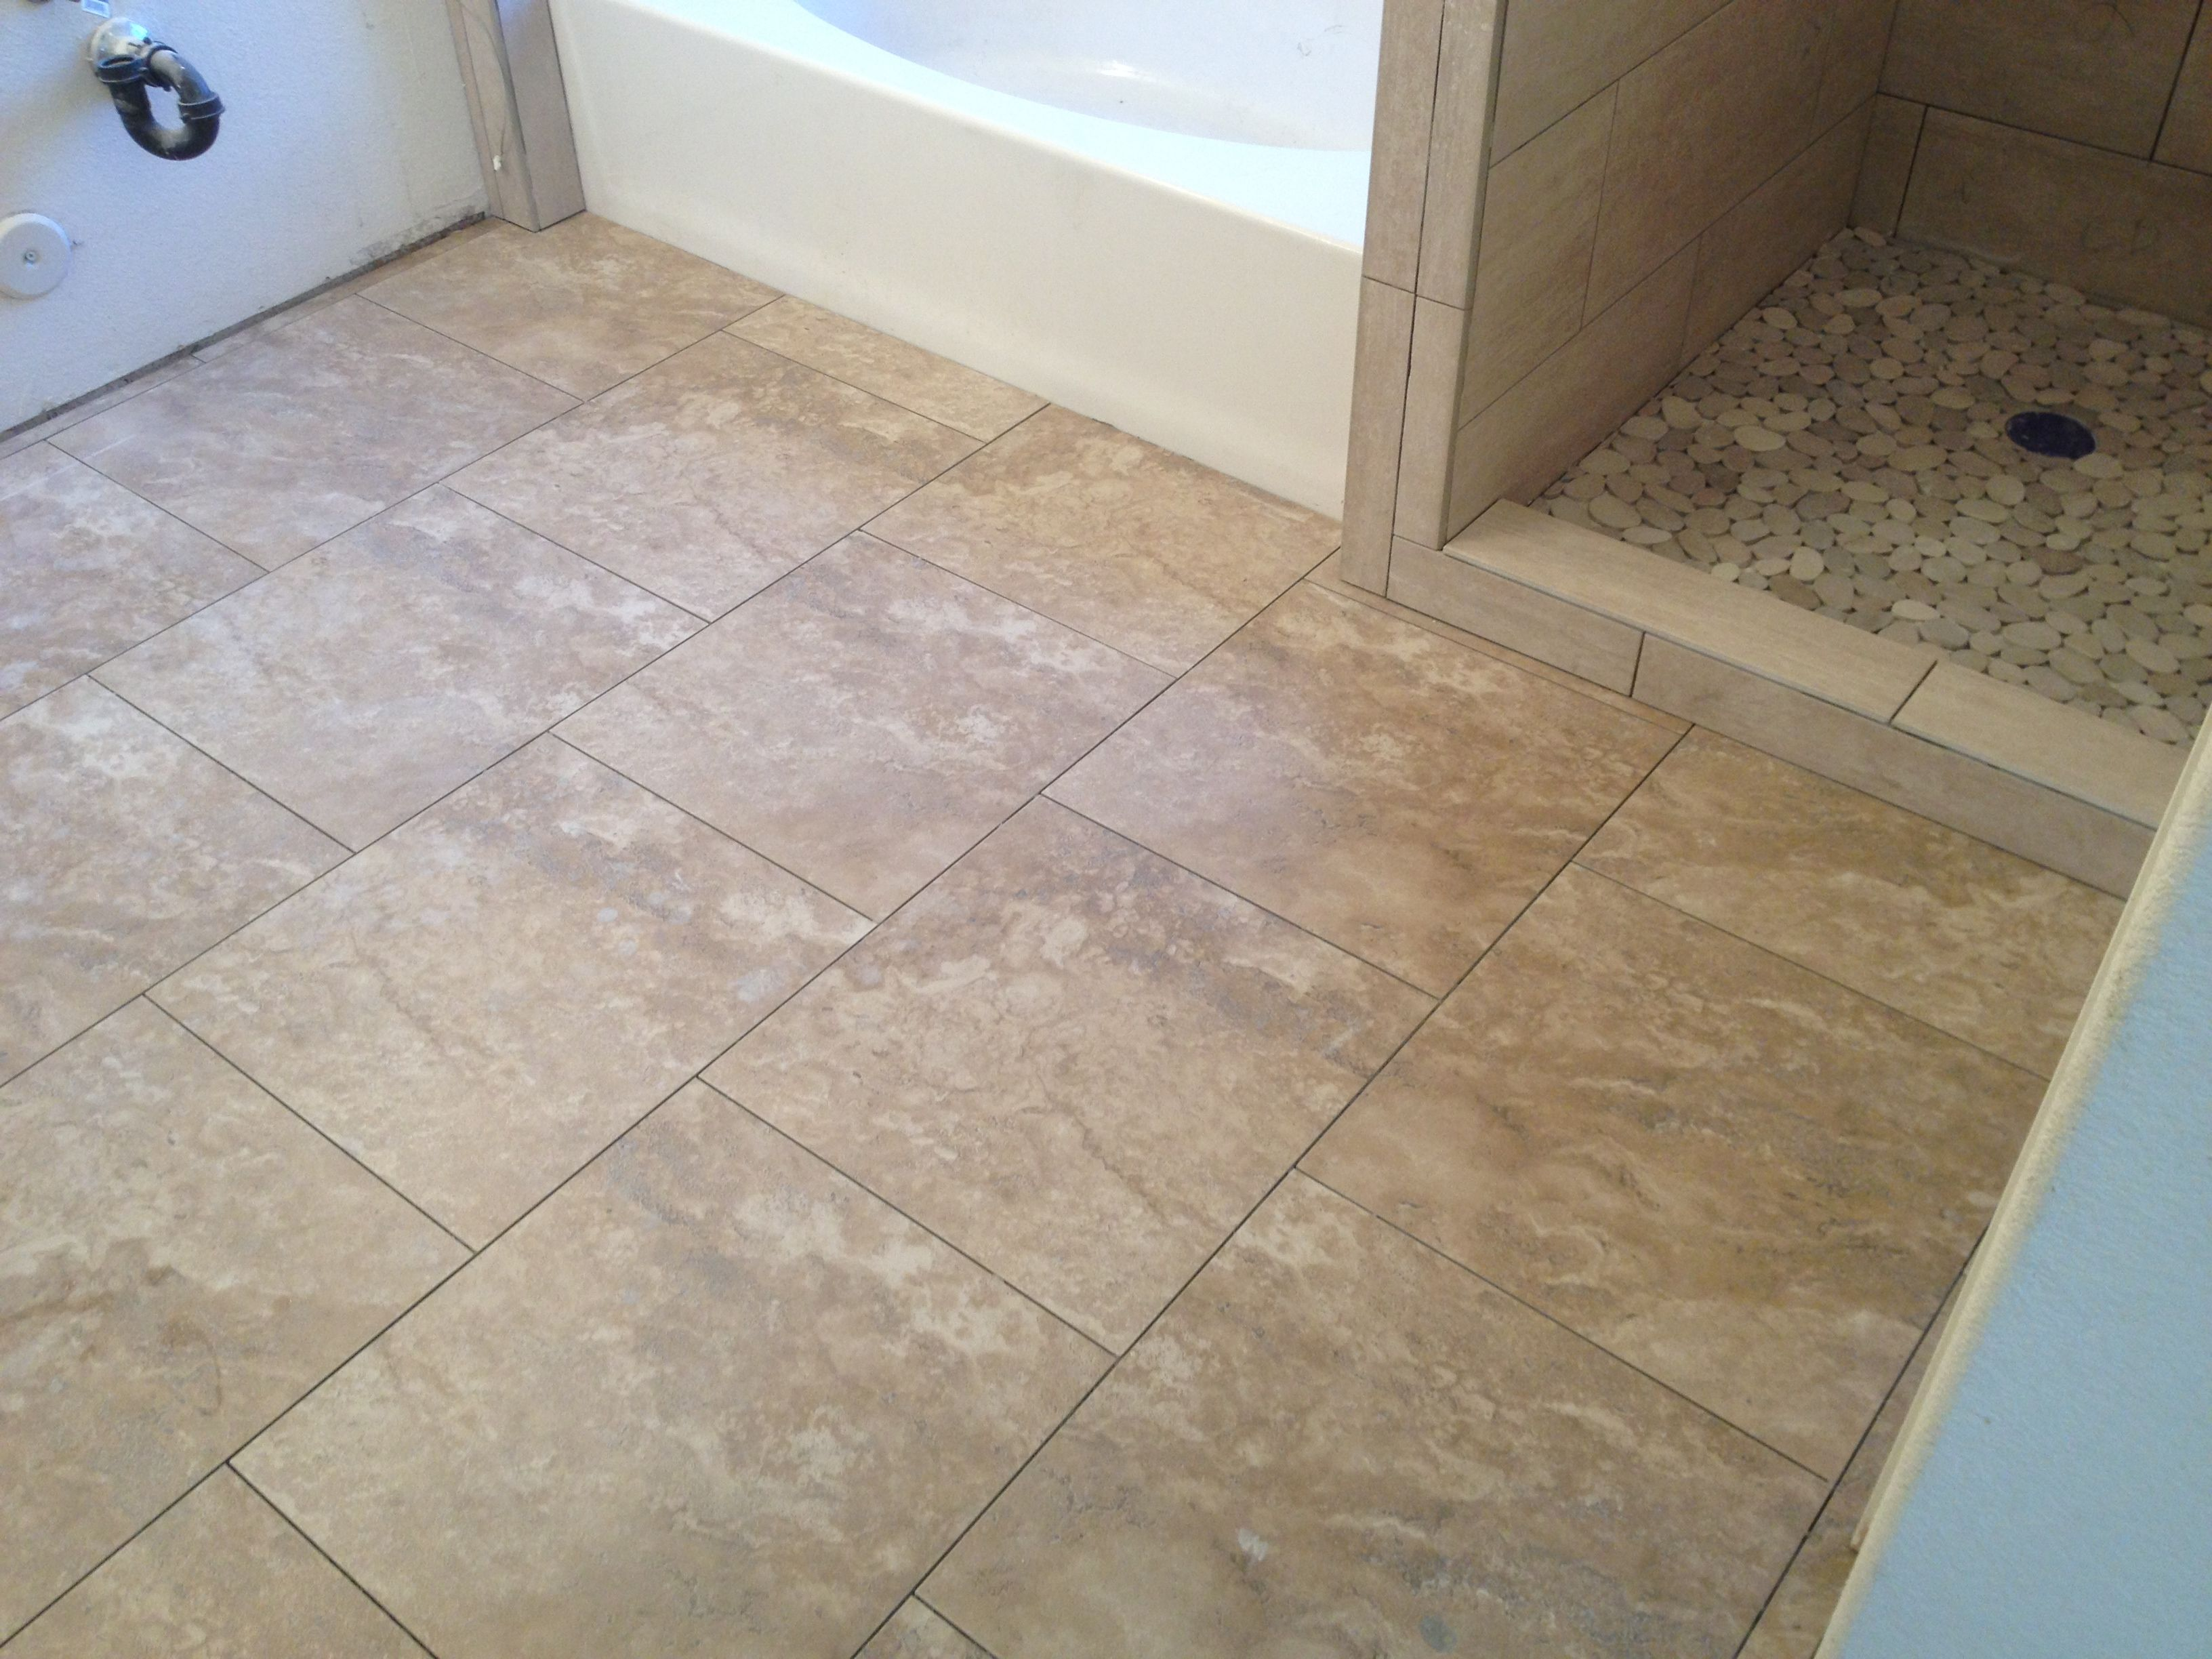 20x20 tile laid on diagonal in small bathroom.